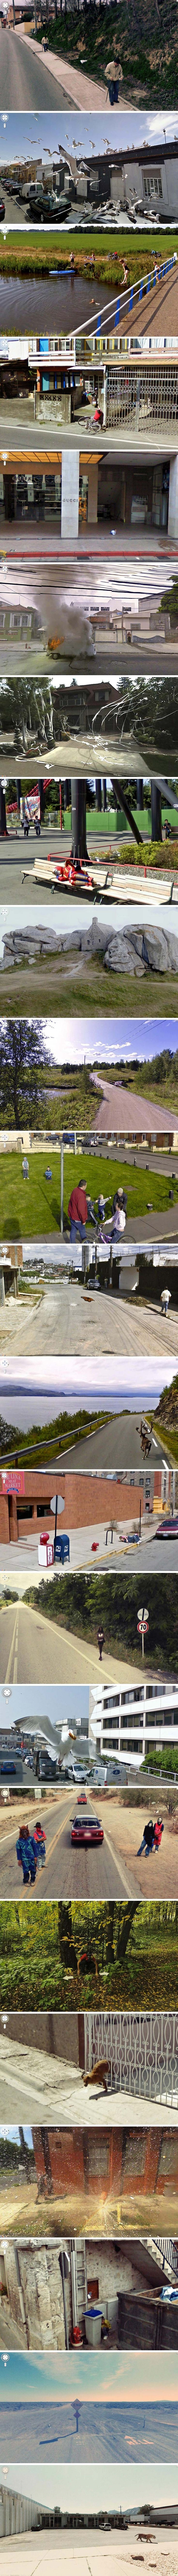 Google Maps Awesomeness! The guy crouching in the bushes.. What the heck?